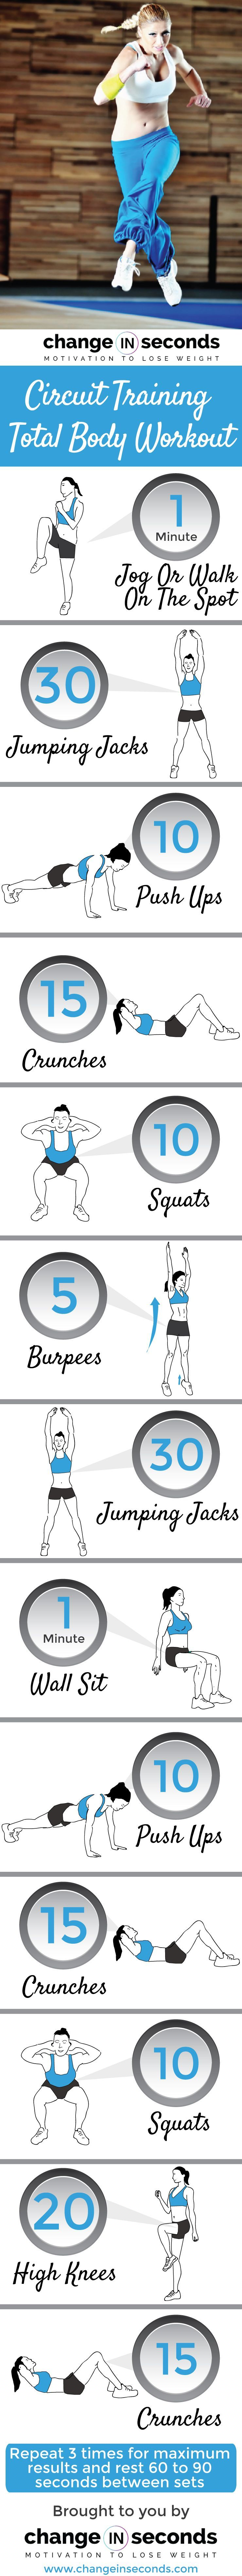 #instructions #exercises #calories #crunches #download #training #circuit #burpees #workout #jumping...